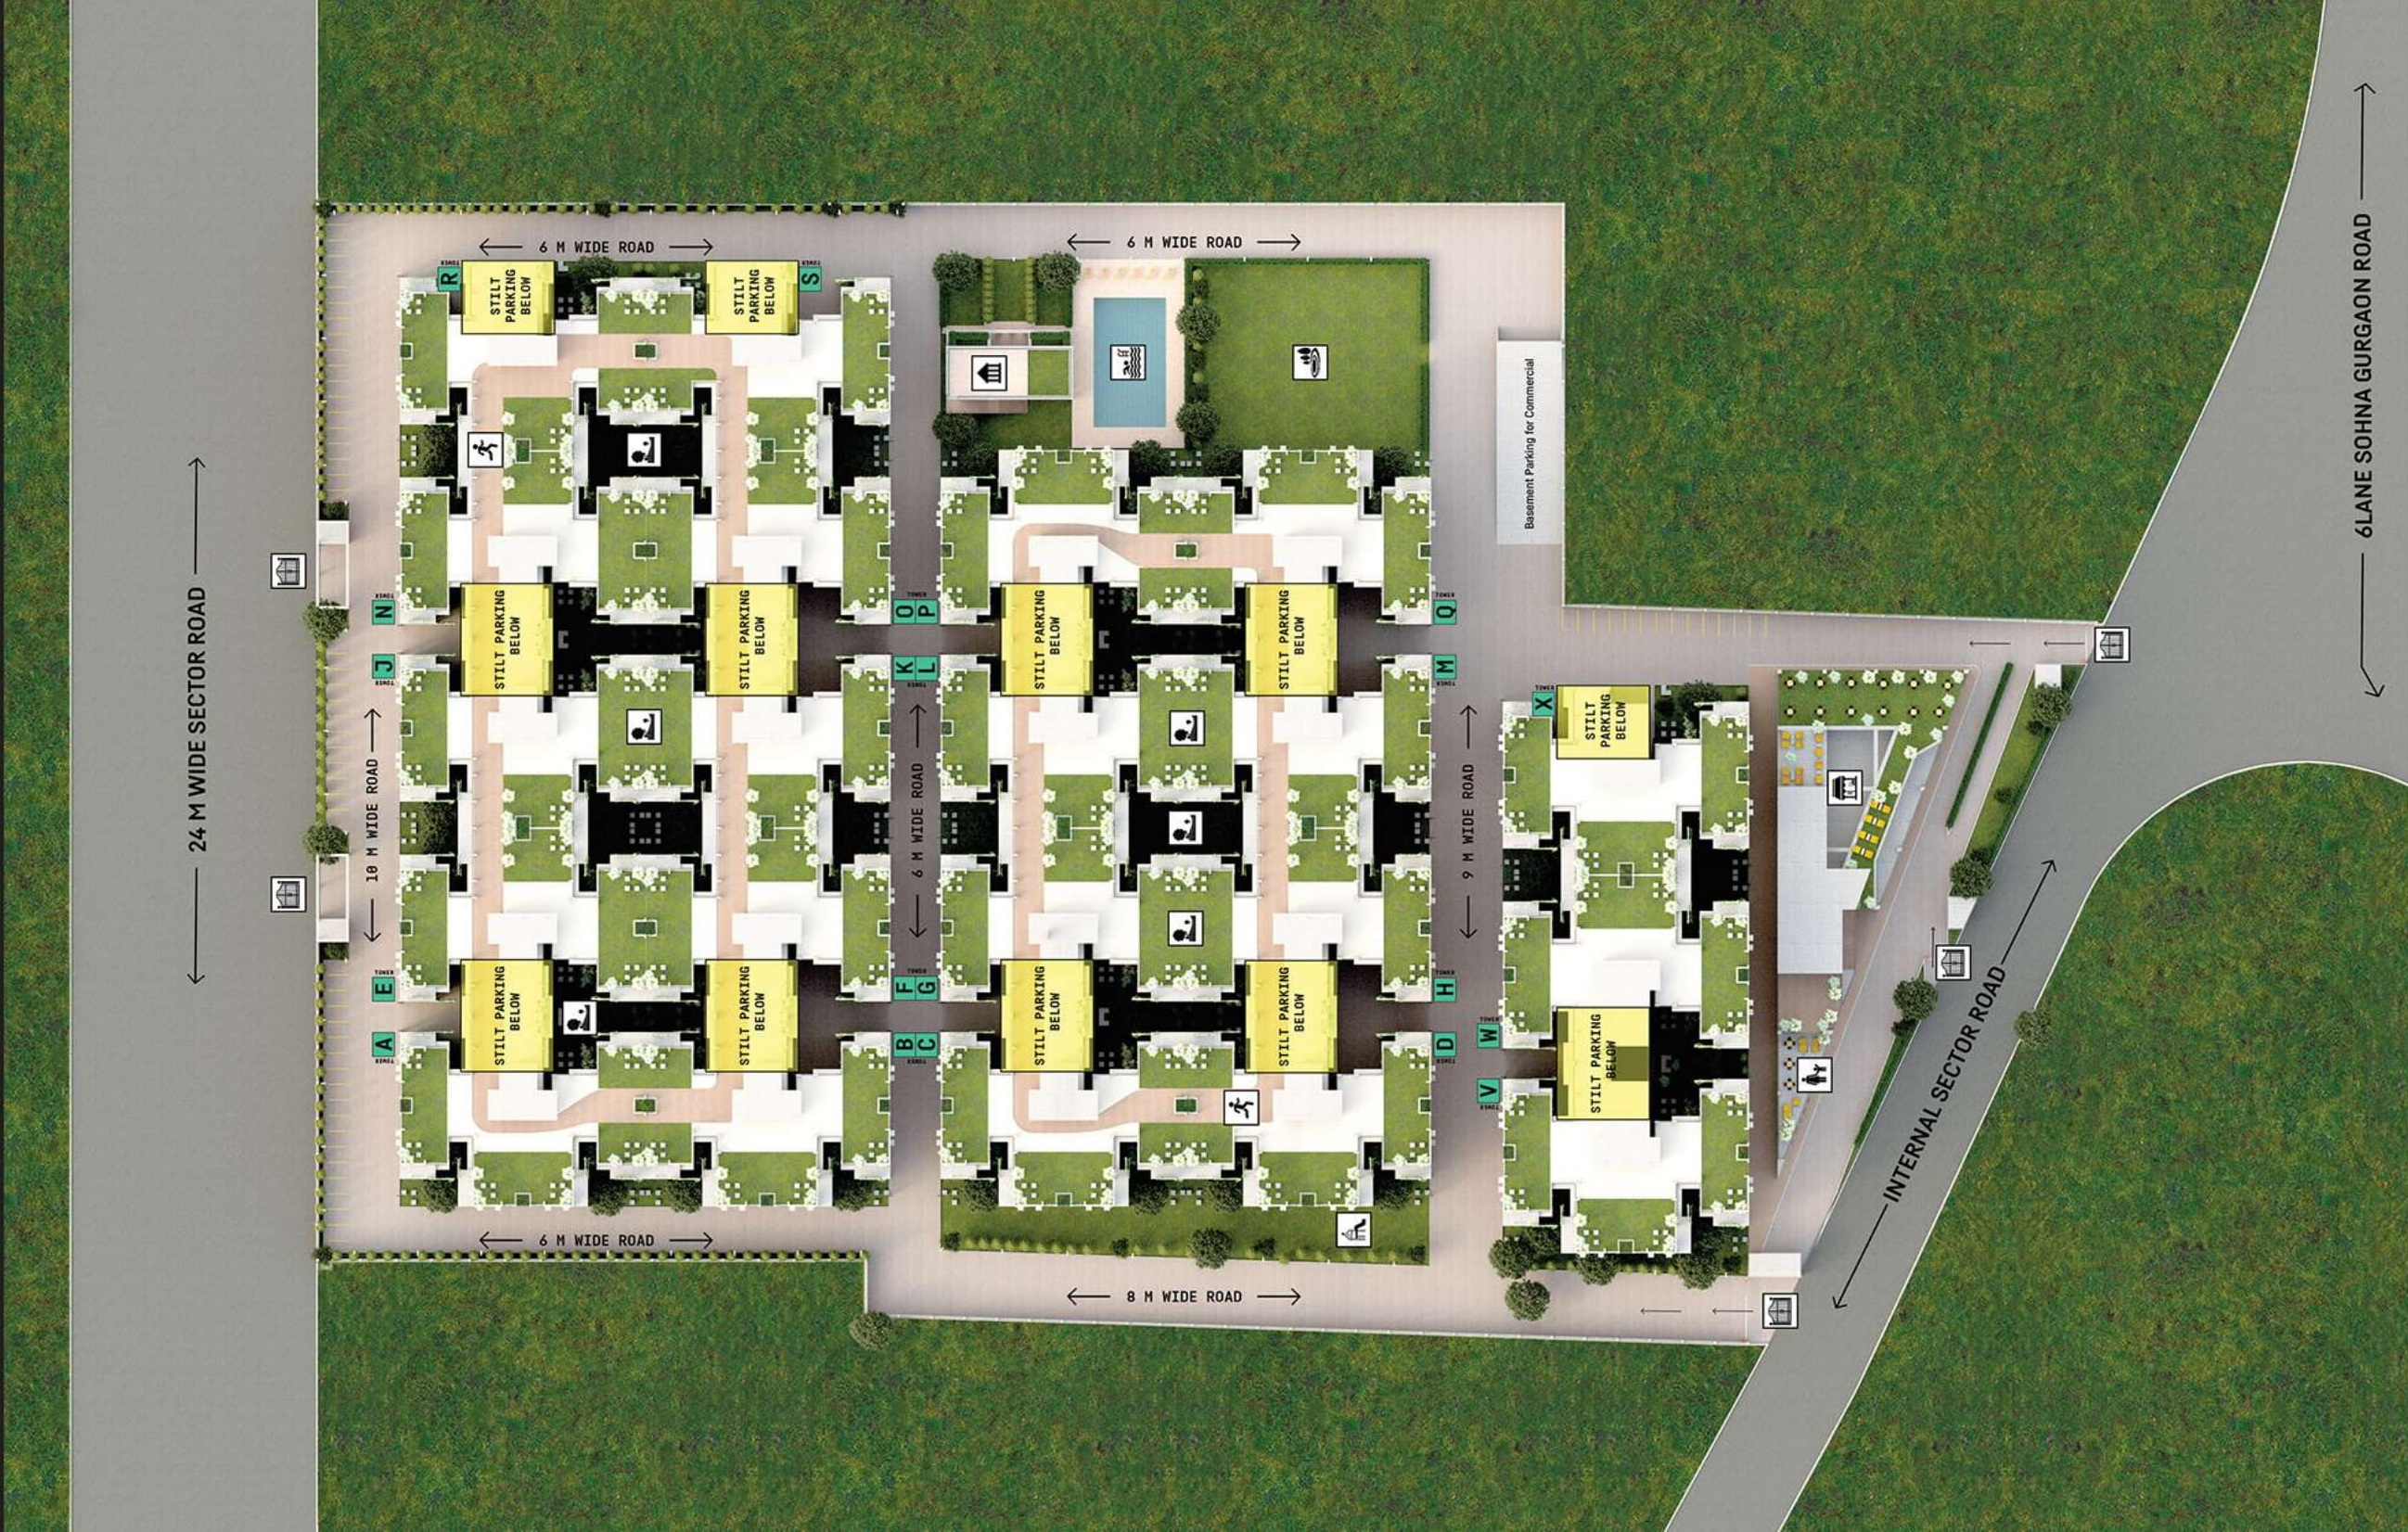 Trisara Our Homes 3 Layout Plan